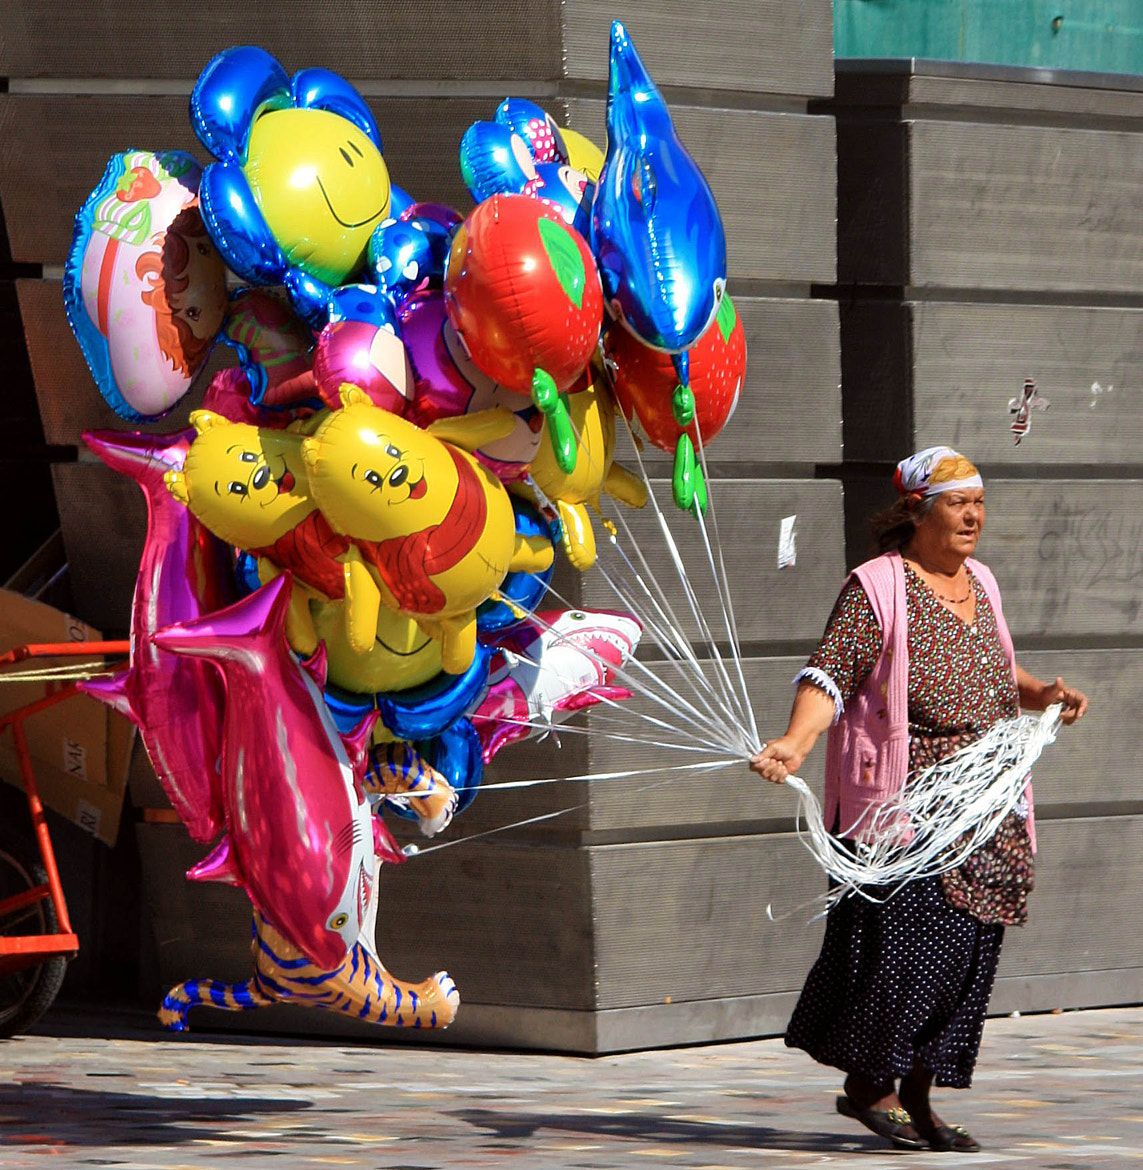 Photograph Balloons by Gerry Dempsey on 500px